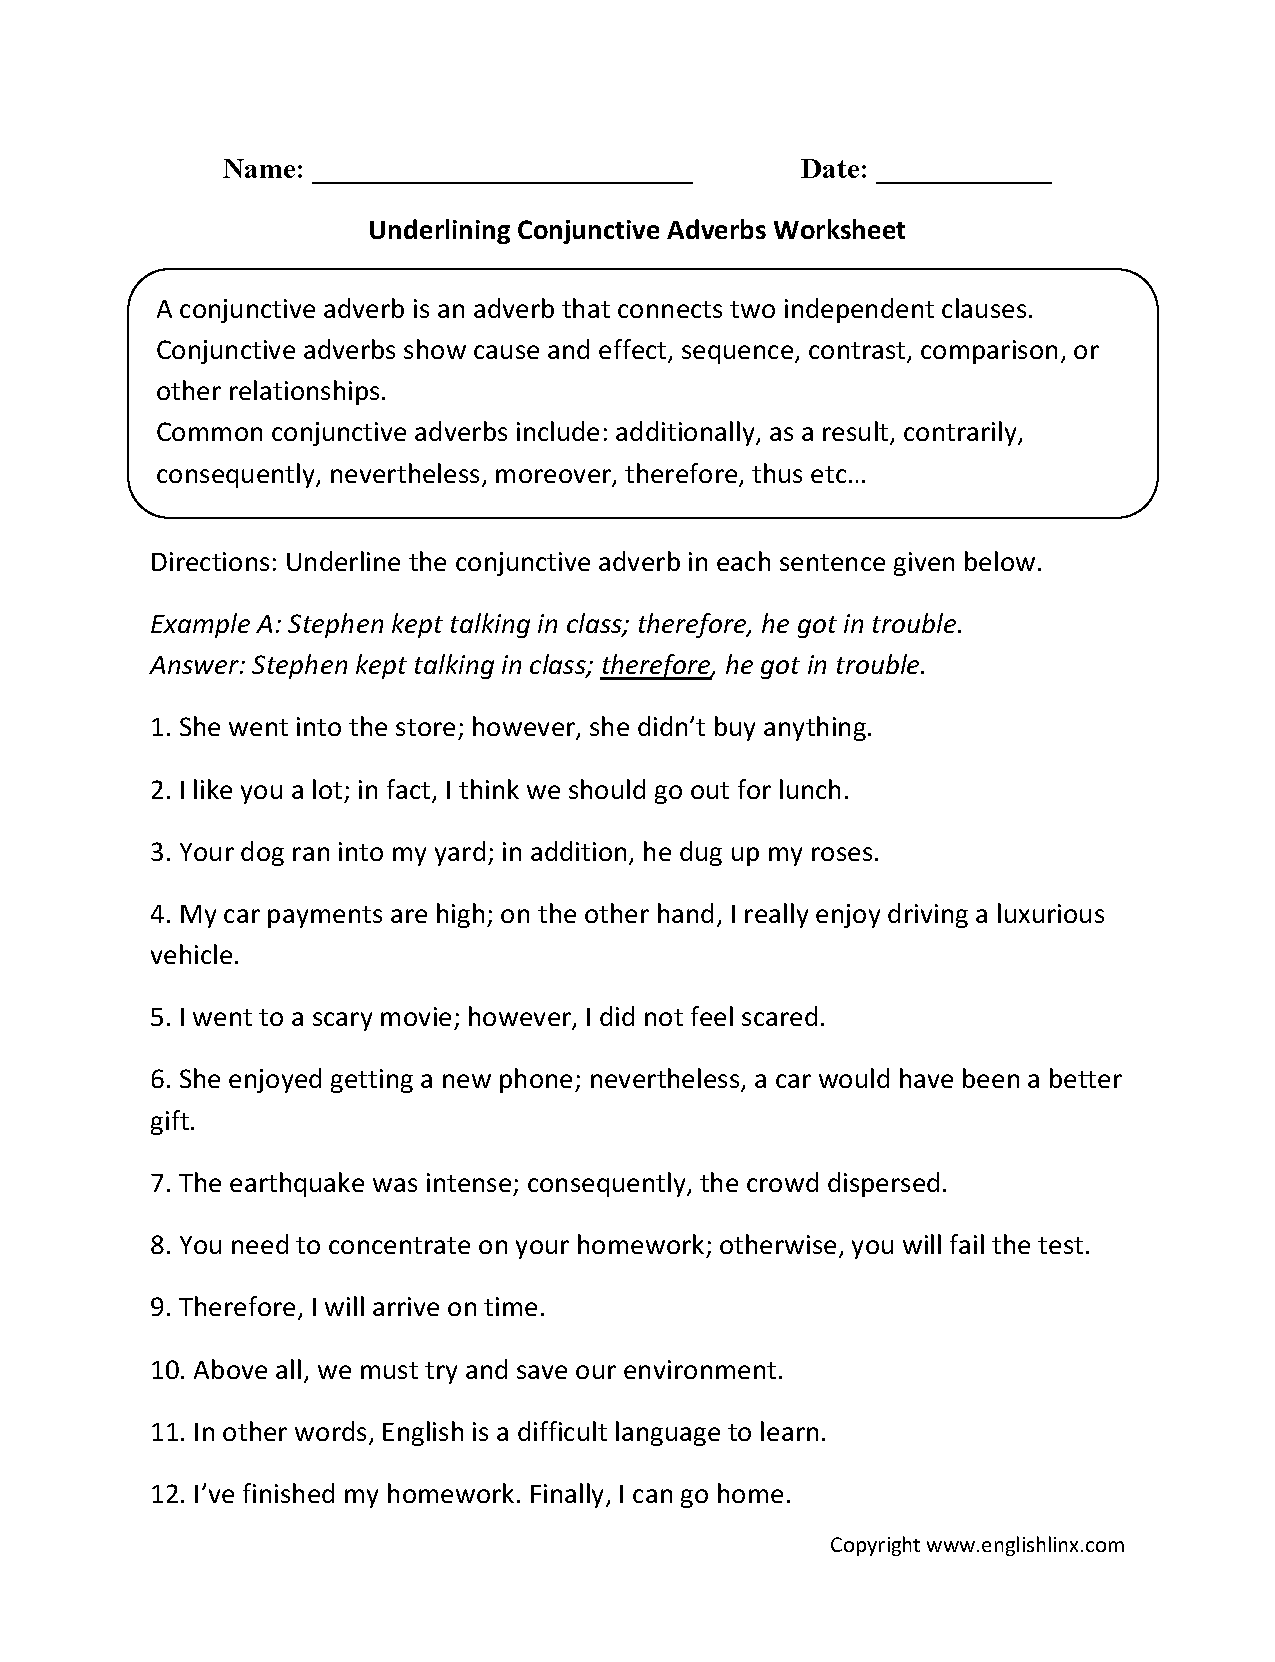 Weirdmailus  Marvellous Englishlinxcom  Conjunctions Worksheets With Fair Worksheet With Appealing Negative Number Line Worksheet Also Victorian Inventions Worksheet In Addition Project Worksheets And Reception Worksheets English As Well As  Digit Subtraction With Regrouping Across Zeros Worksheets Additionally Native American Pictographs Worksheet From Englishlinxcom With Weirdmailus  Fair Englishlinxcom  Conjunctions Worksheets With Appealing Worksheet And Marvellous Negative Number Line Worksheet Also Victorian Inventions Worksheet In Addition Project Worksheets From Englishlinxcom